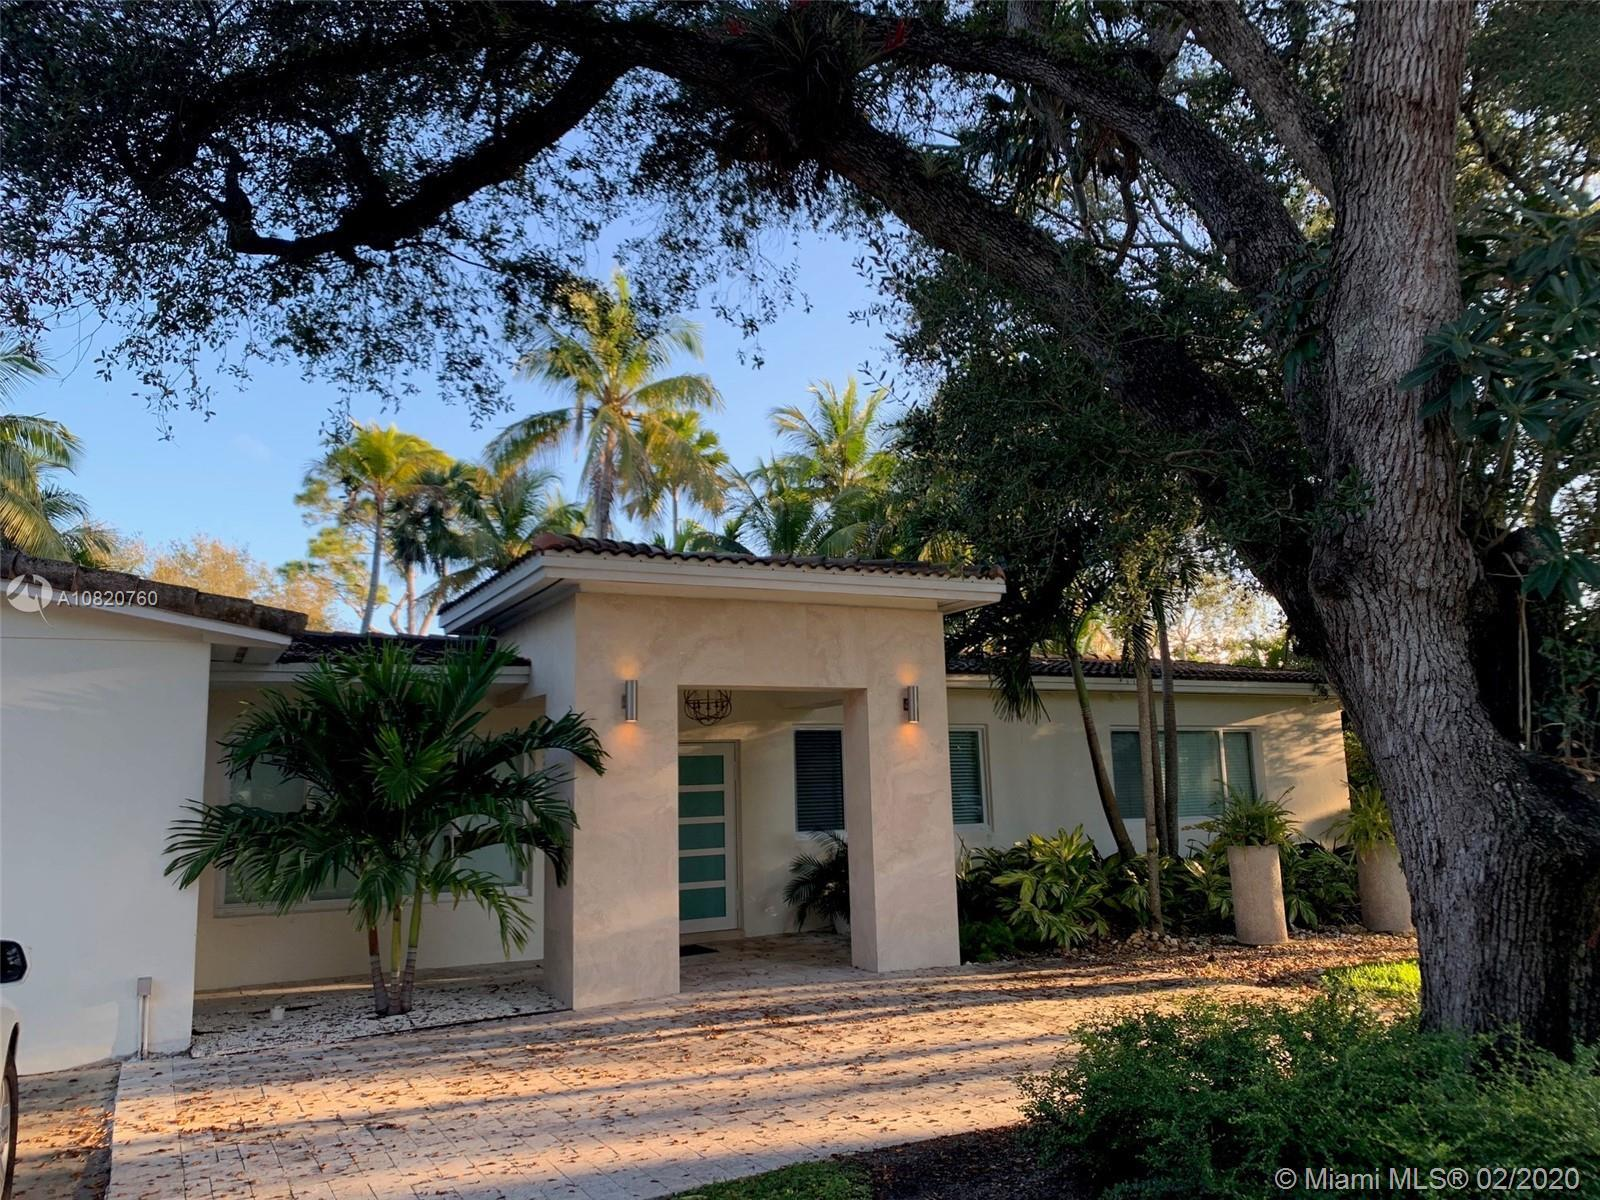 North Pinecrest lush tropical oasis with easy access to shops, restaurants and major roadways. 5 bed